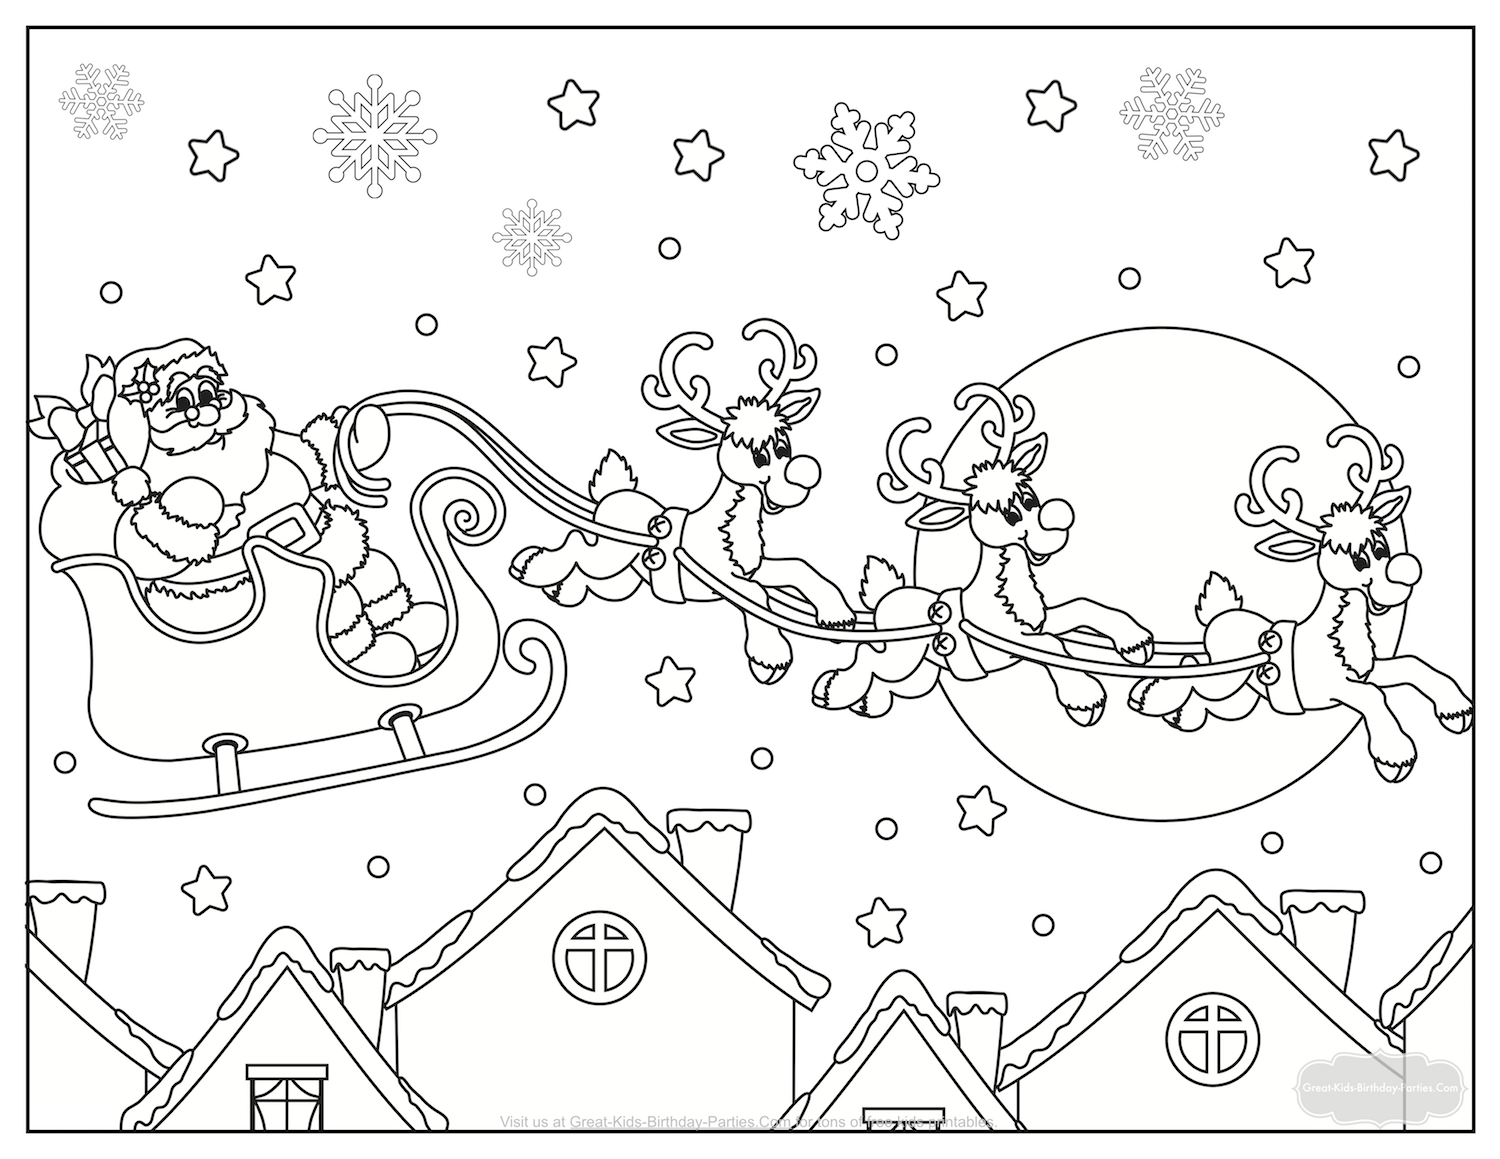 Santa toy shop coloring pages | 1159x1500